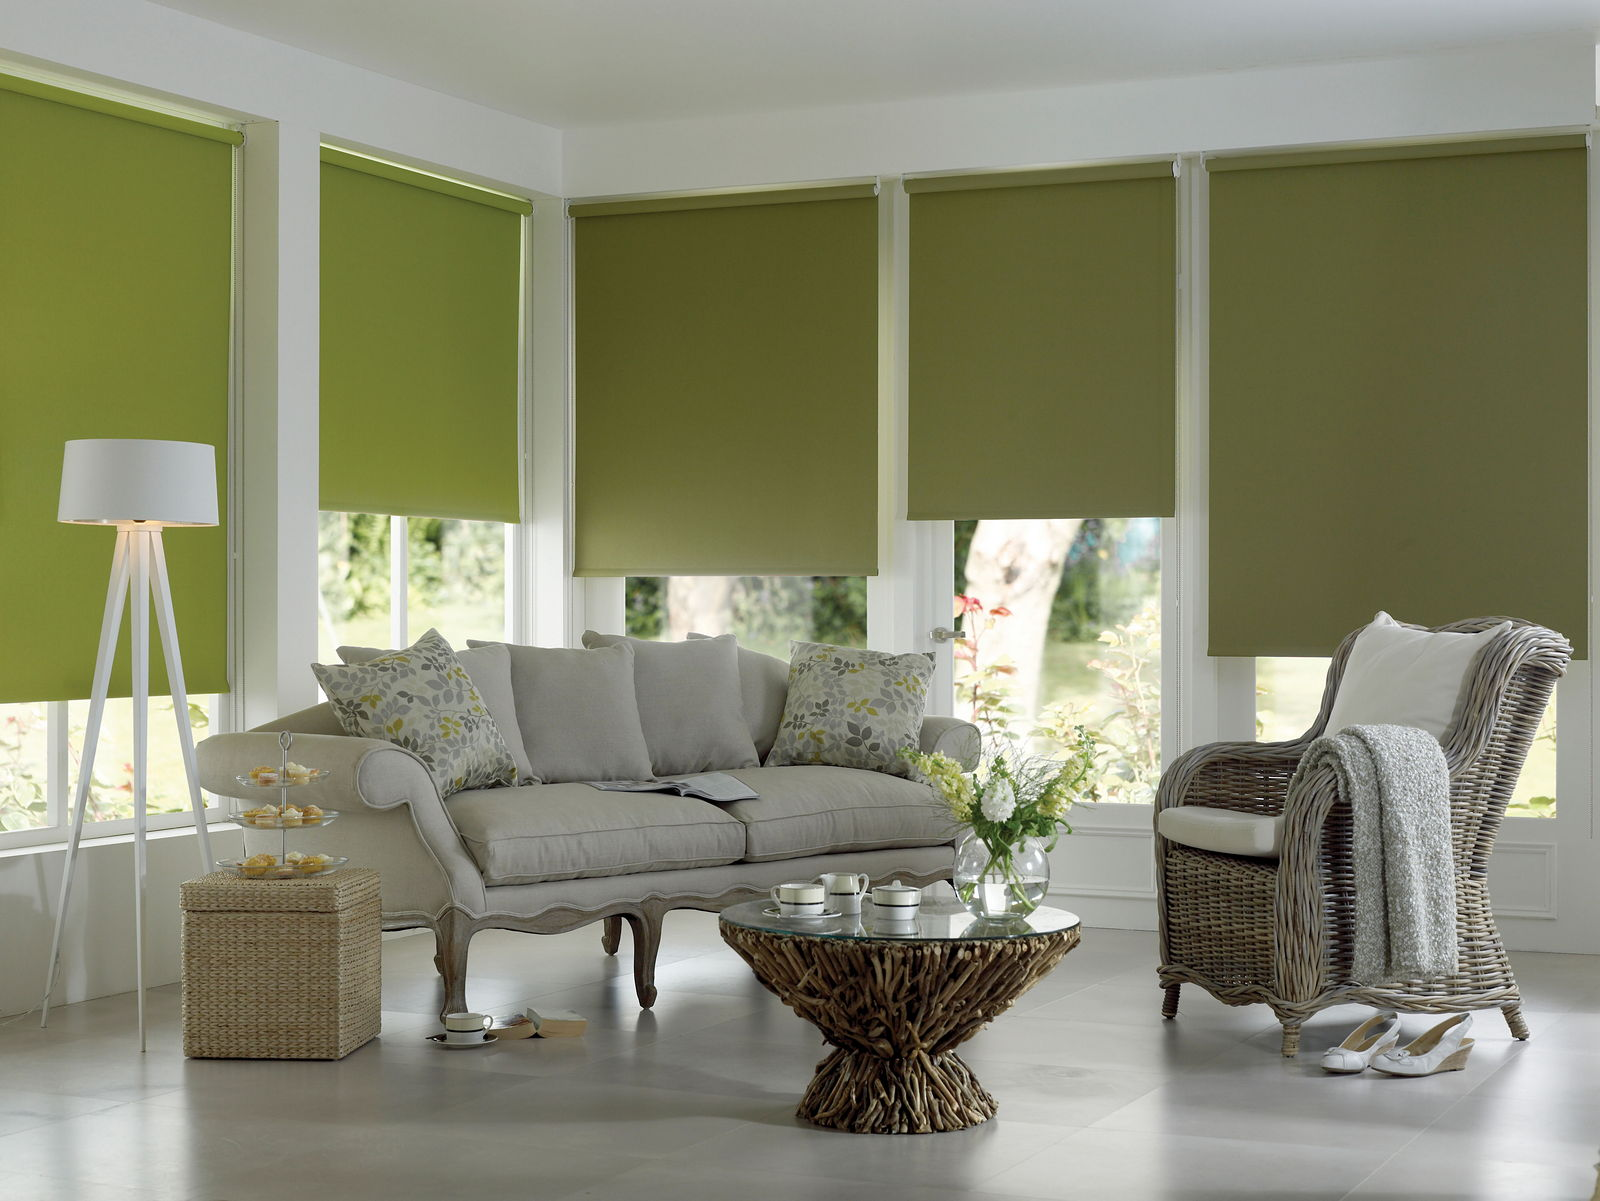 Living Room Curtains: the best photos of curtains` design ... on Living Room Curtains Ideas  id=96434